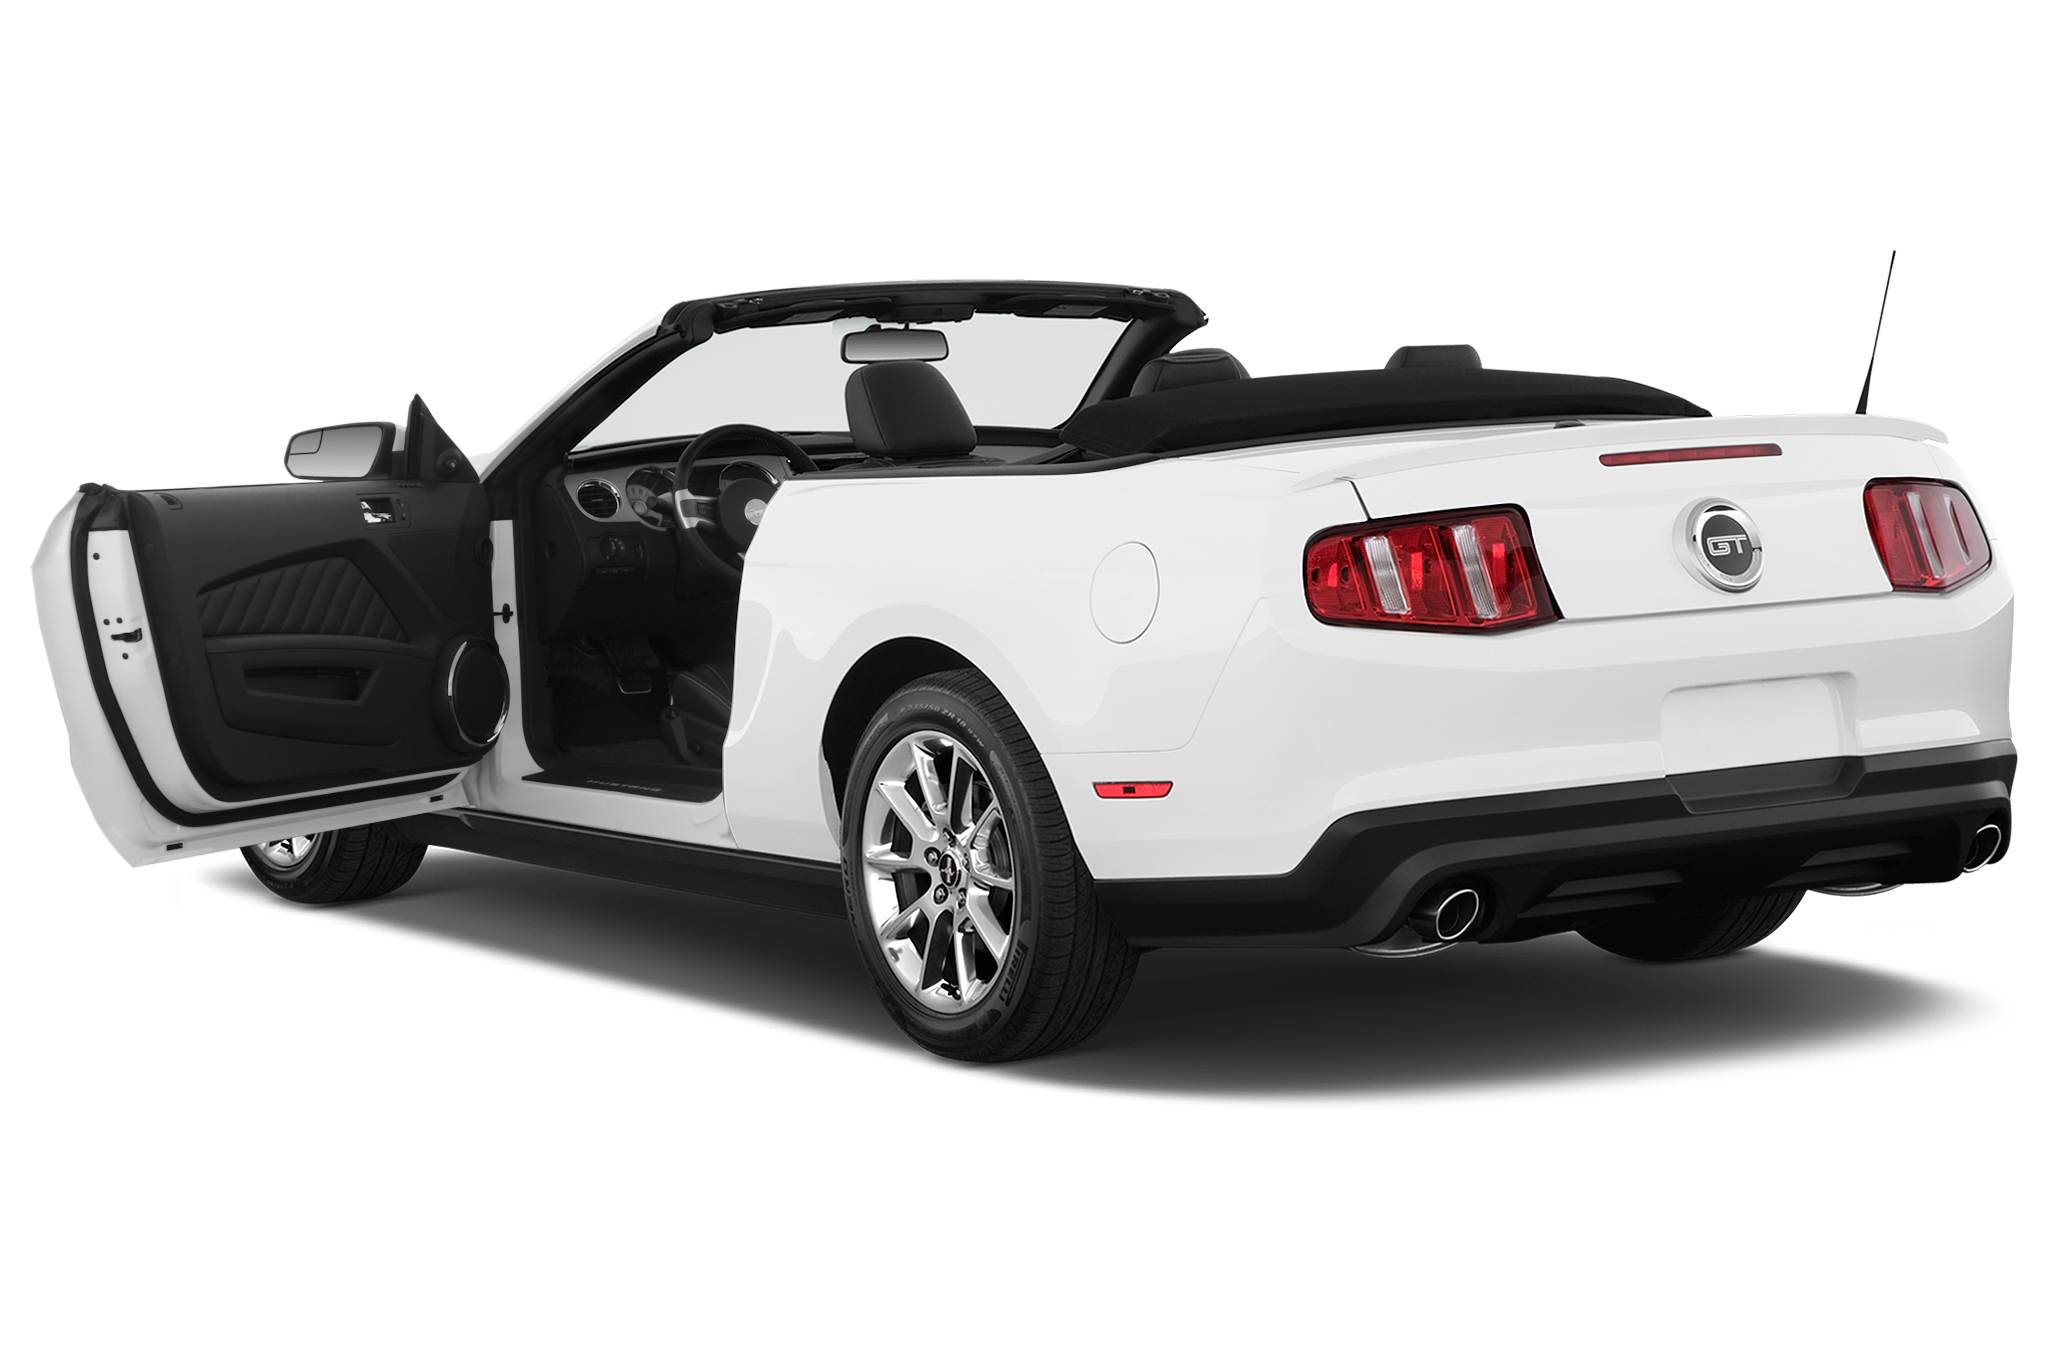 2012 ford mustang boss 302 10 greatest mustangs automobile magazine. Black Bedroom Furniture Sets. Home Design Ideas